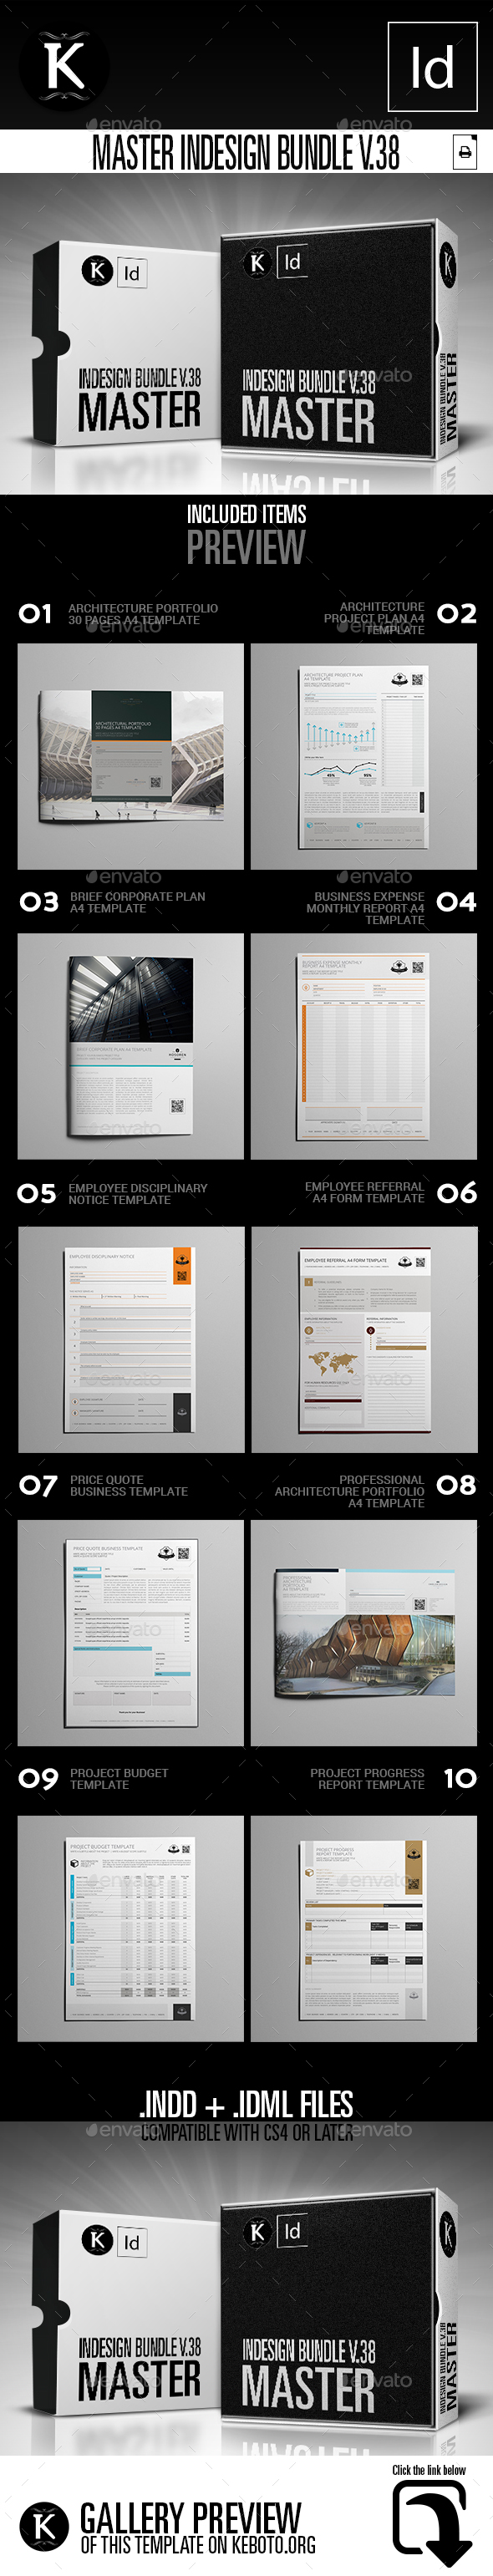 GraphicRiver Master inDesign Bundle v.38 21078204